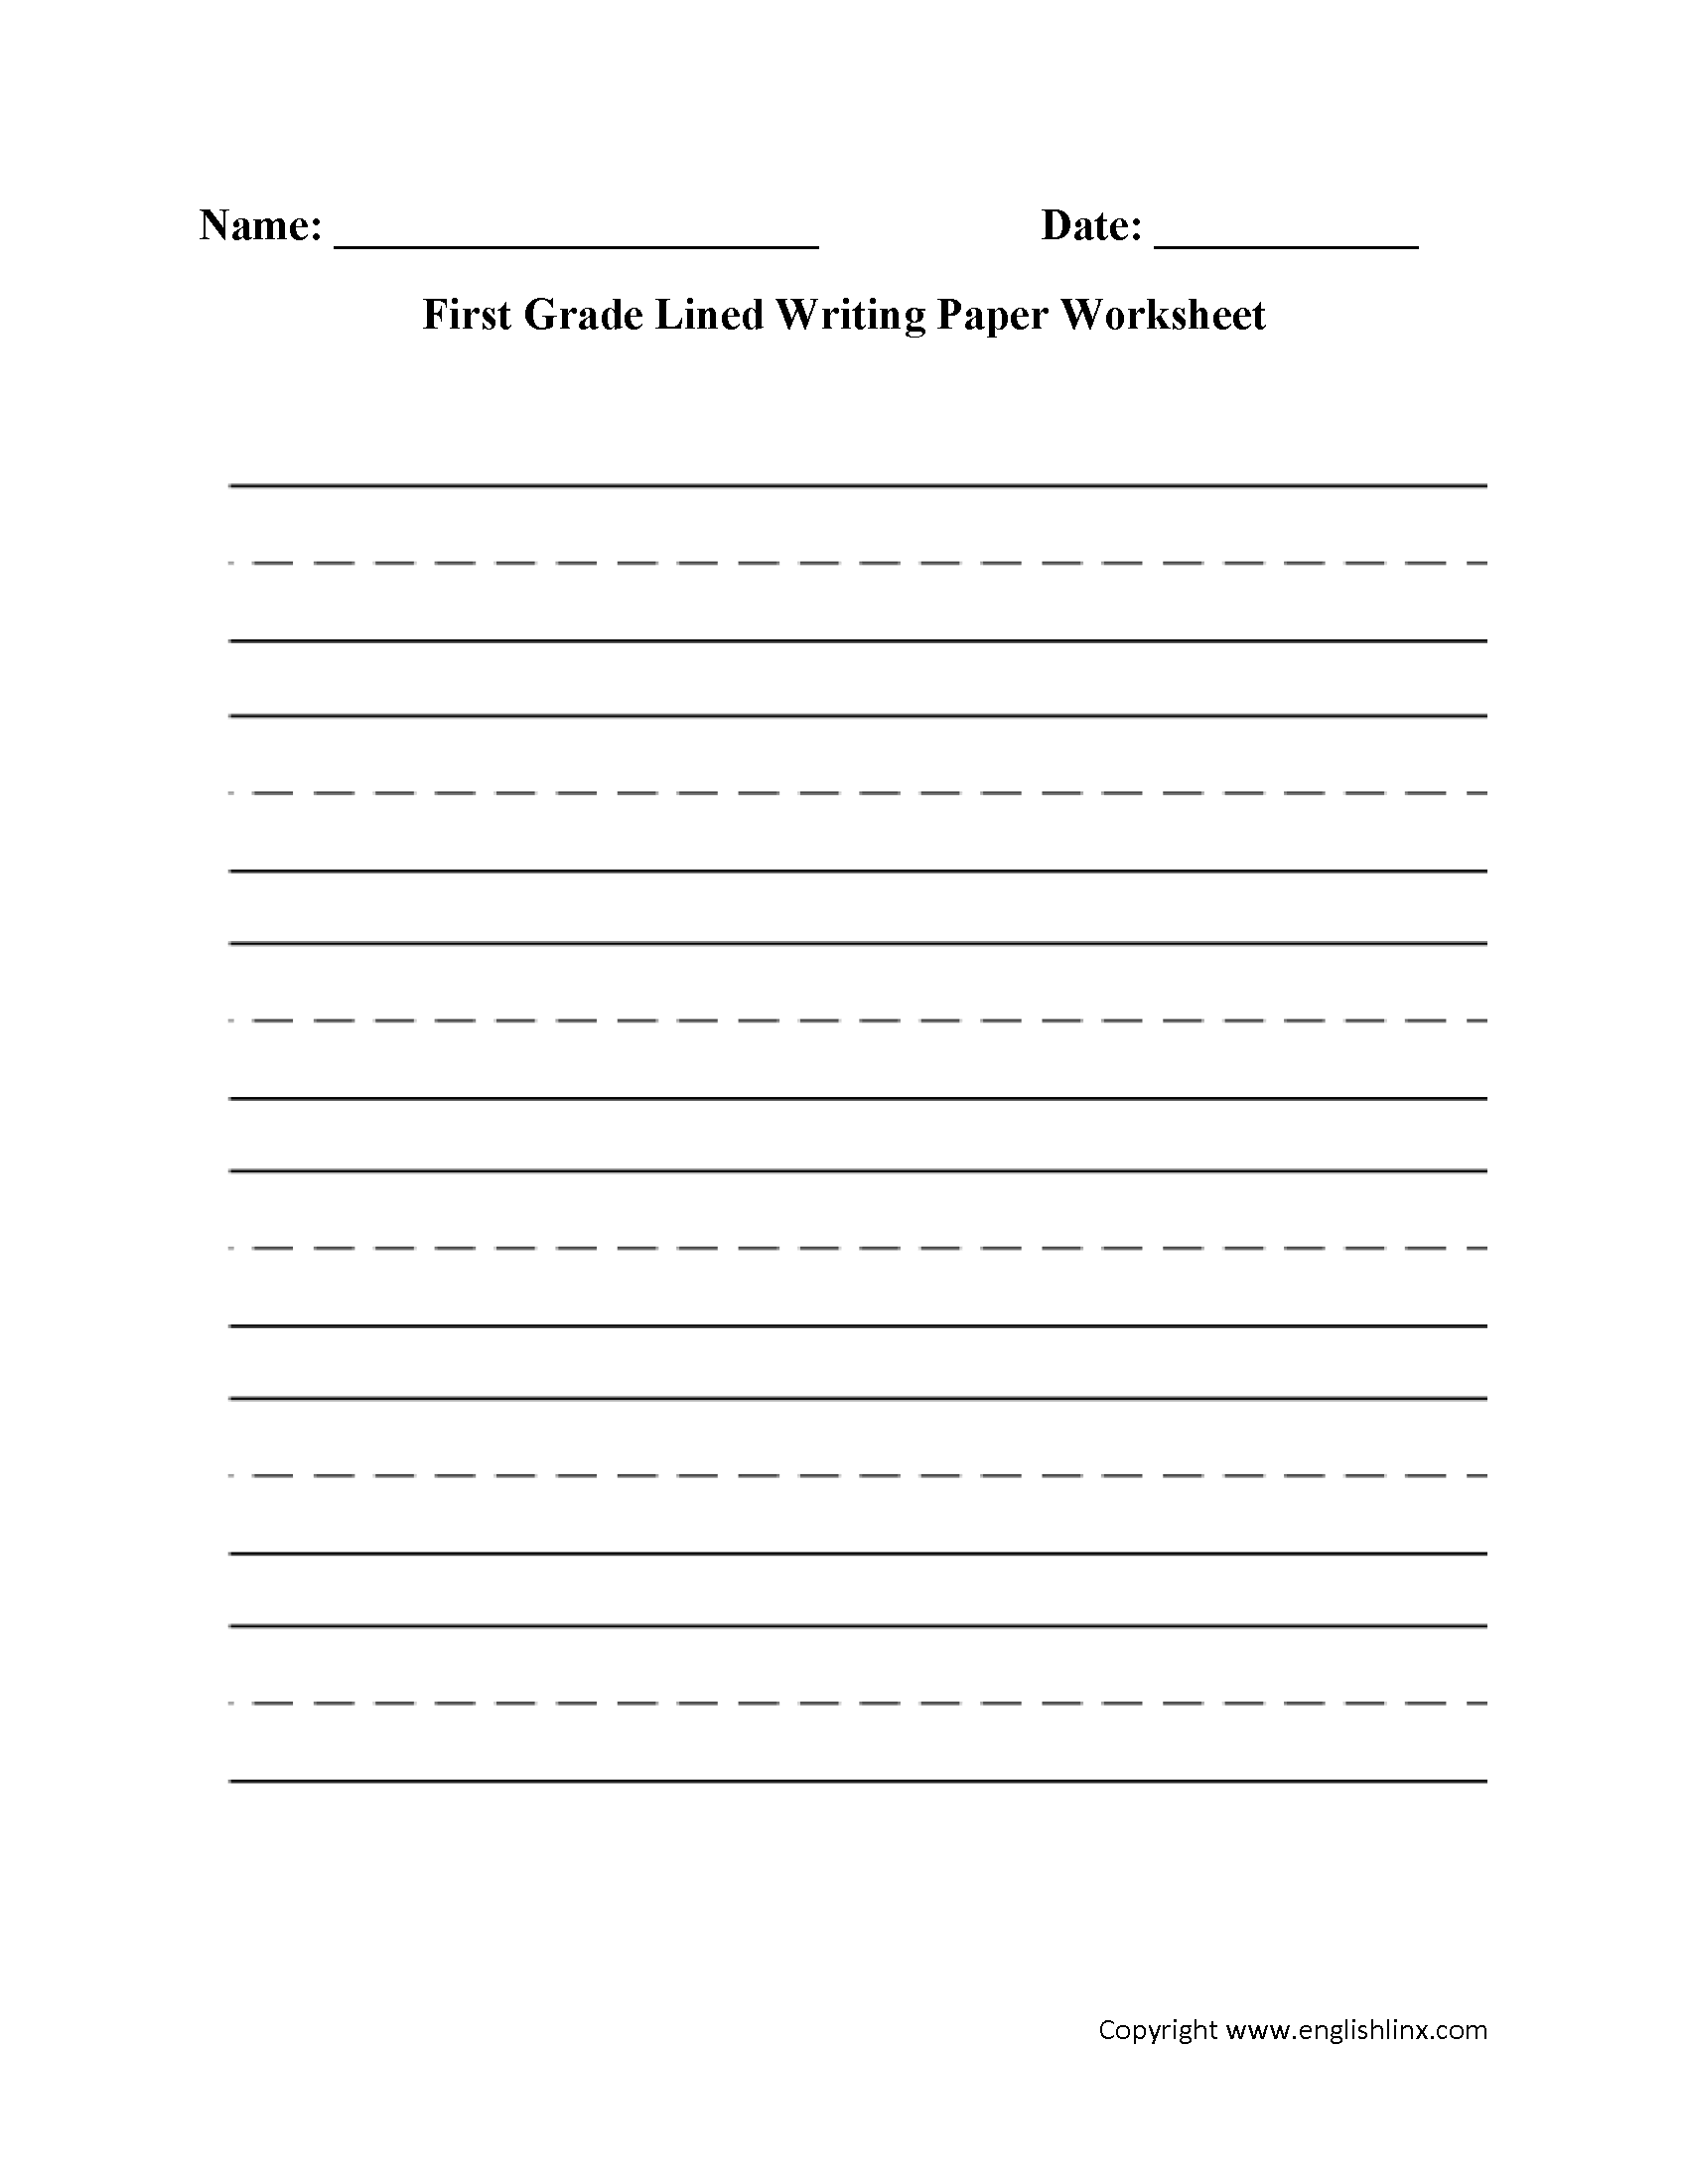 Worksheets Writing For First Grade Worksheets writing worksheets lined paper first grade worksheet